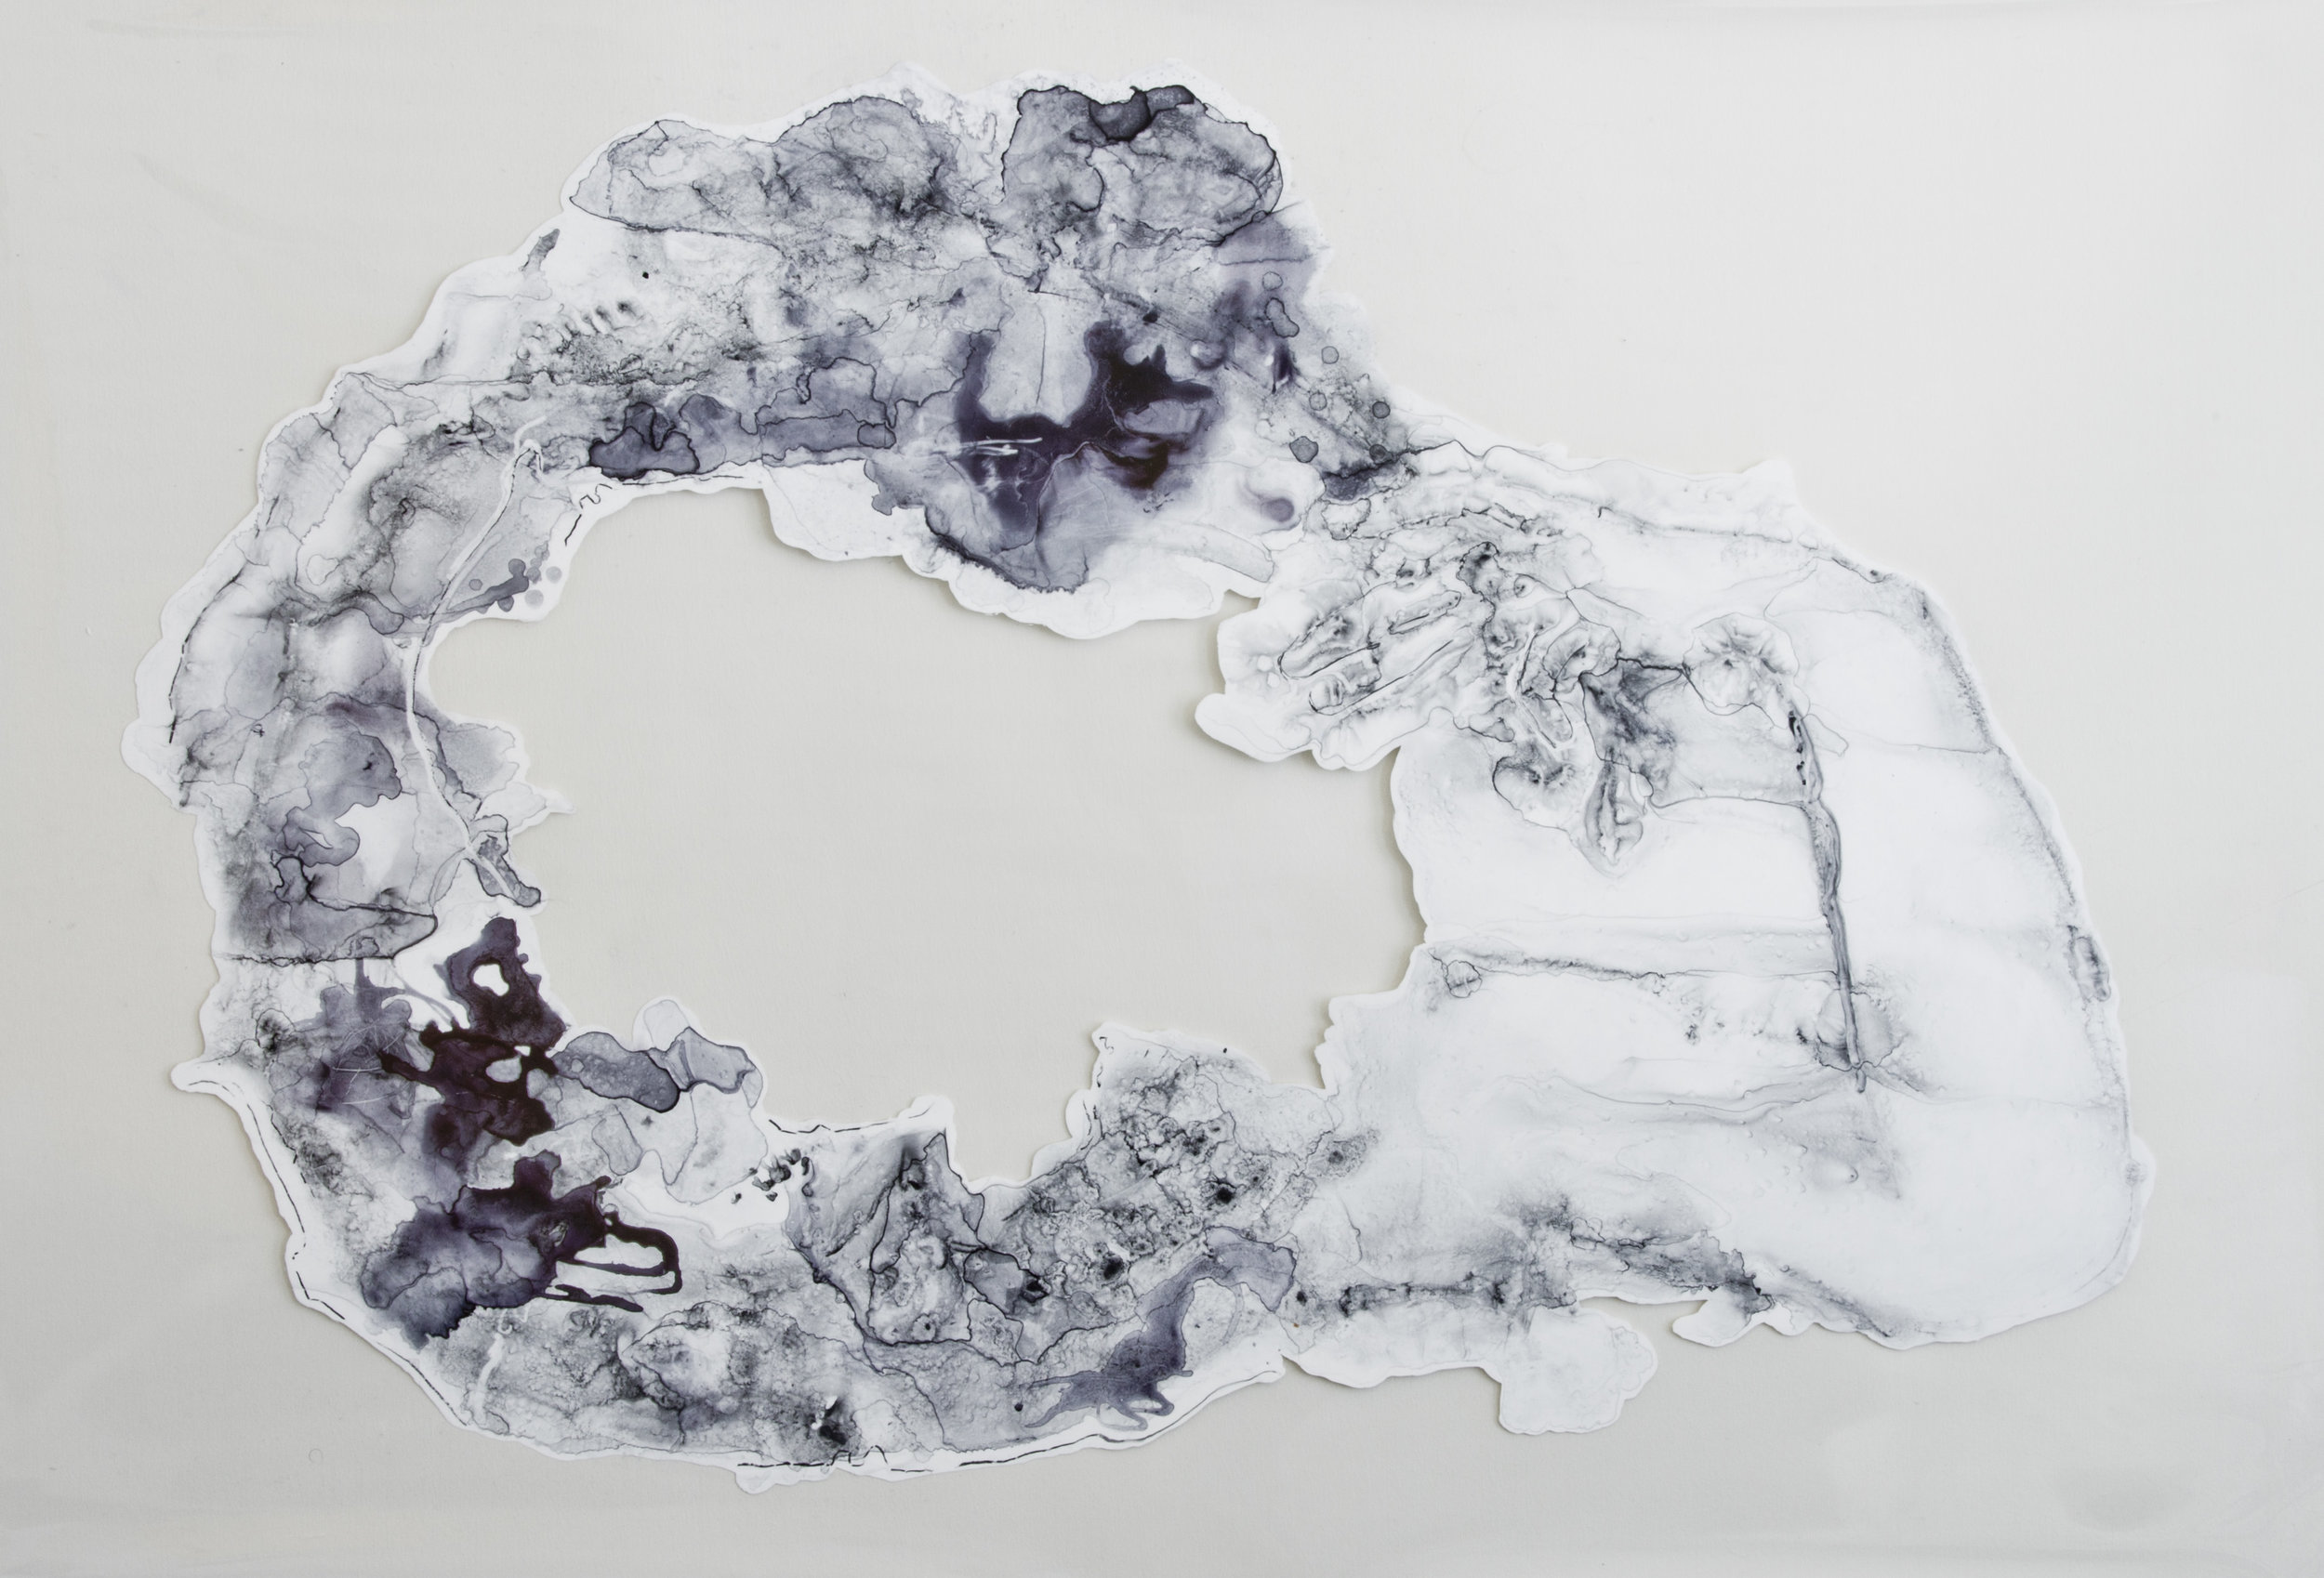 Fluid, Soft and Yielding,  2016, watercolor and acrylic on transparent mylar, 50x35 inches